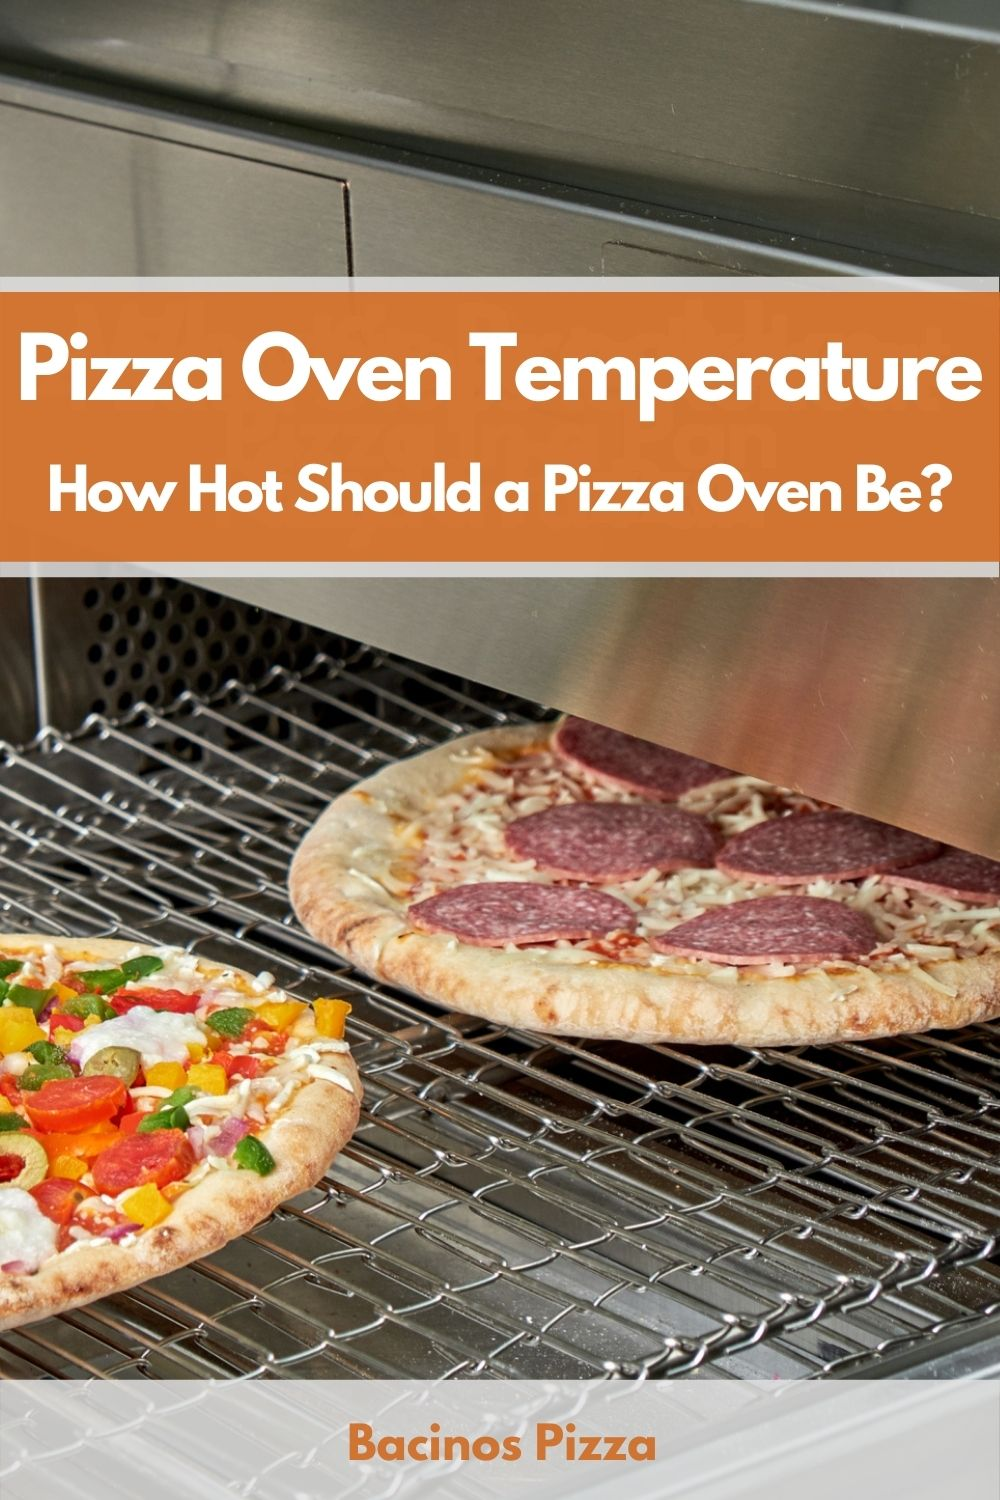 Pizza Oven Temperature How Hot Should a Pizza Oven Be pin 2